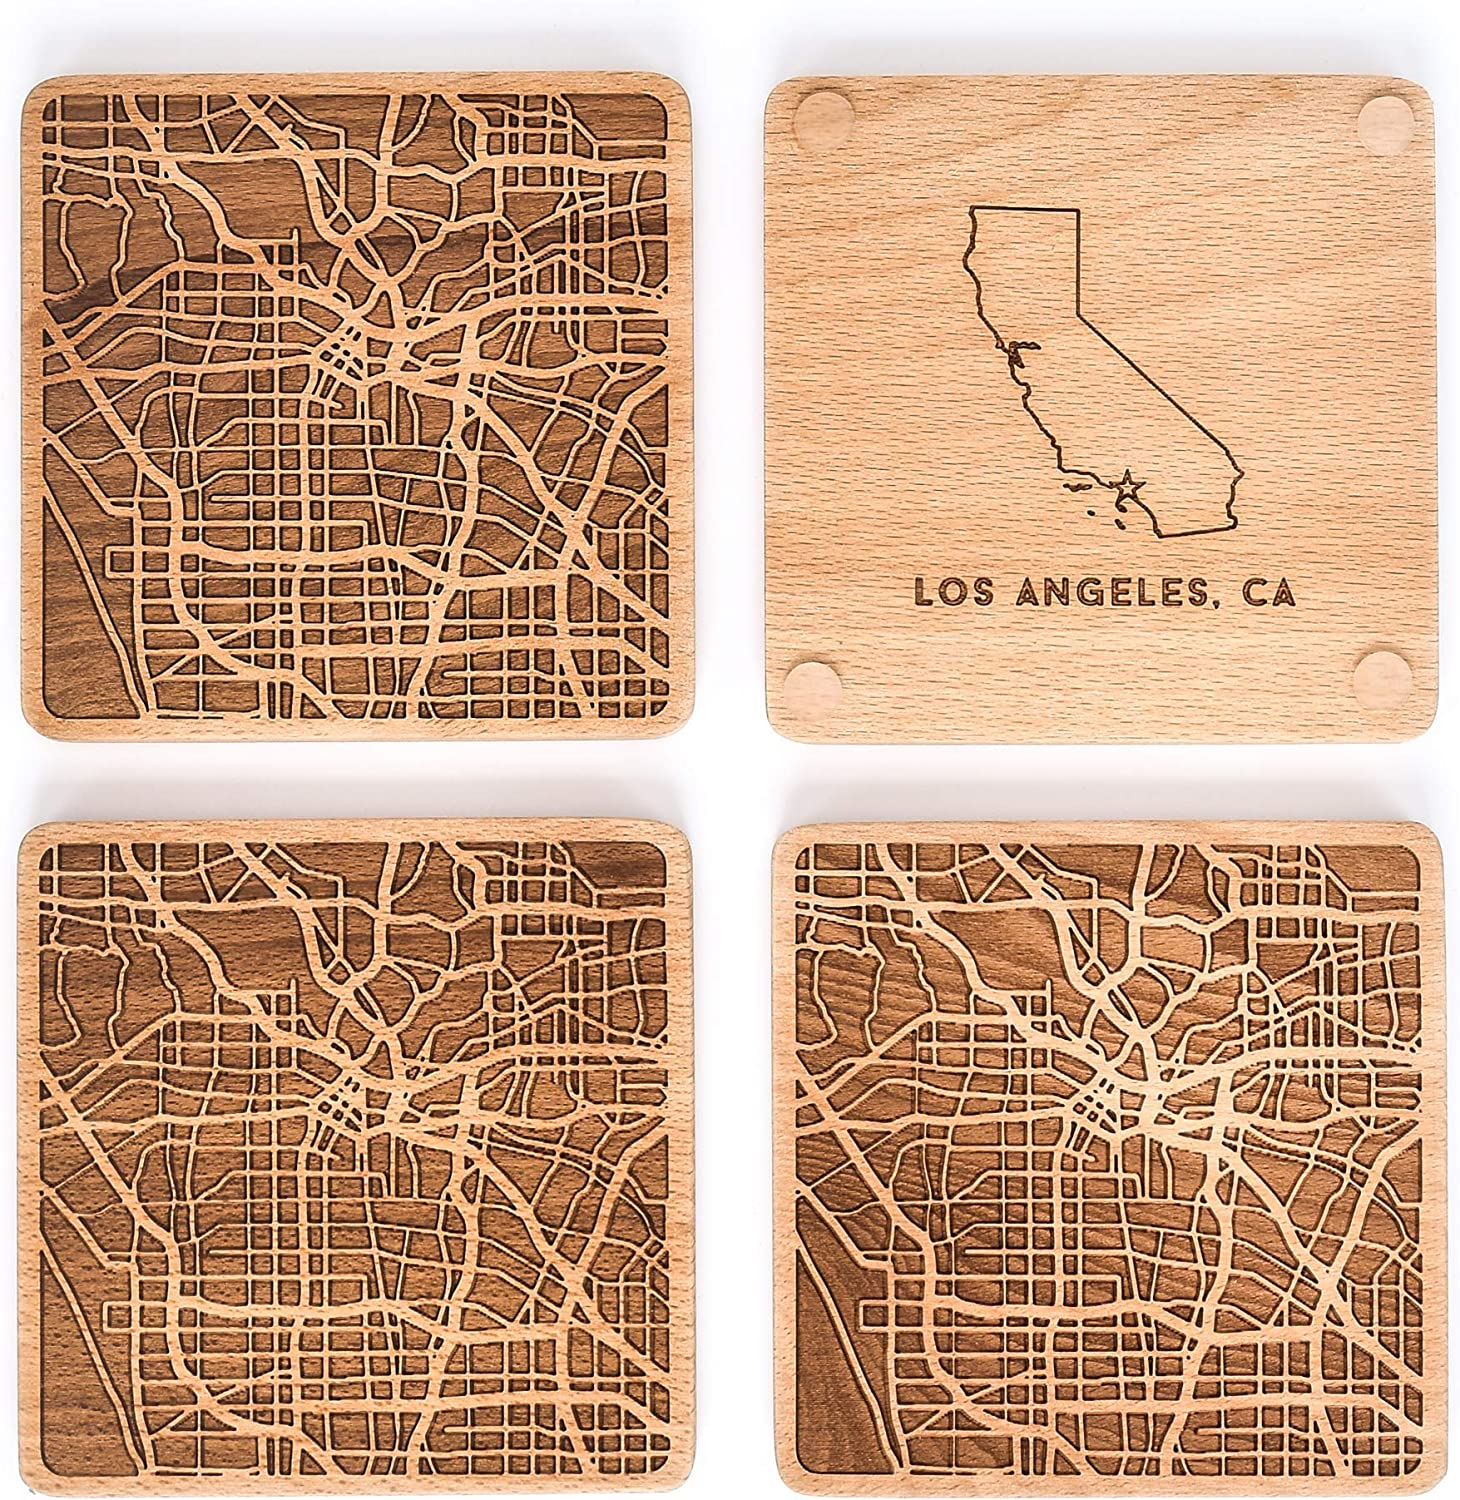 Greenline Goods Beech Wood Coasters Etched Wooden Coaster Set For Los Angeles Lovers Set Of 4 Etched With Los Angeles Map And State Of California 2 Sided Kitchen Dining